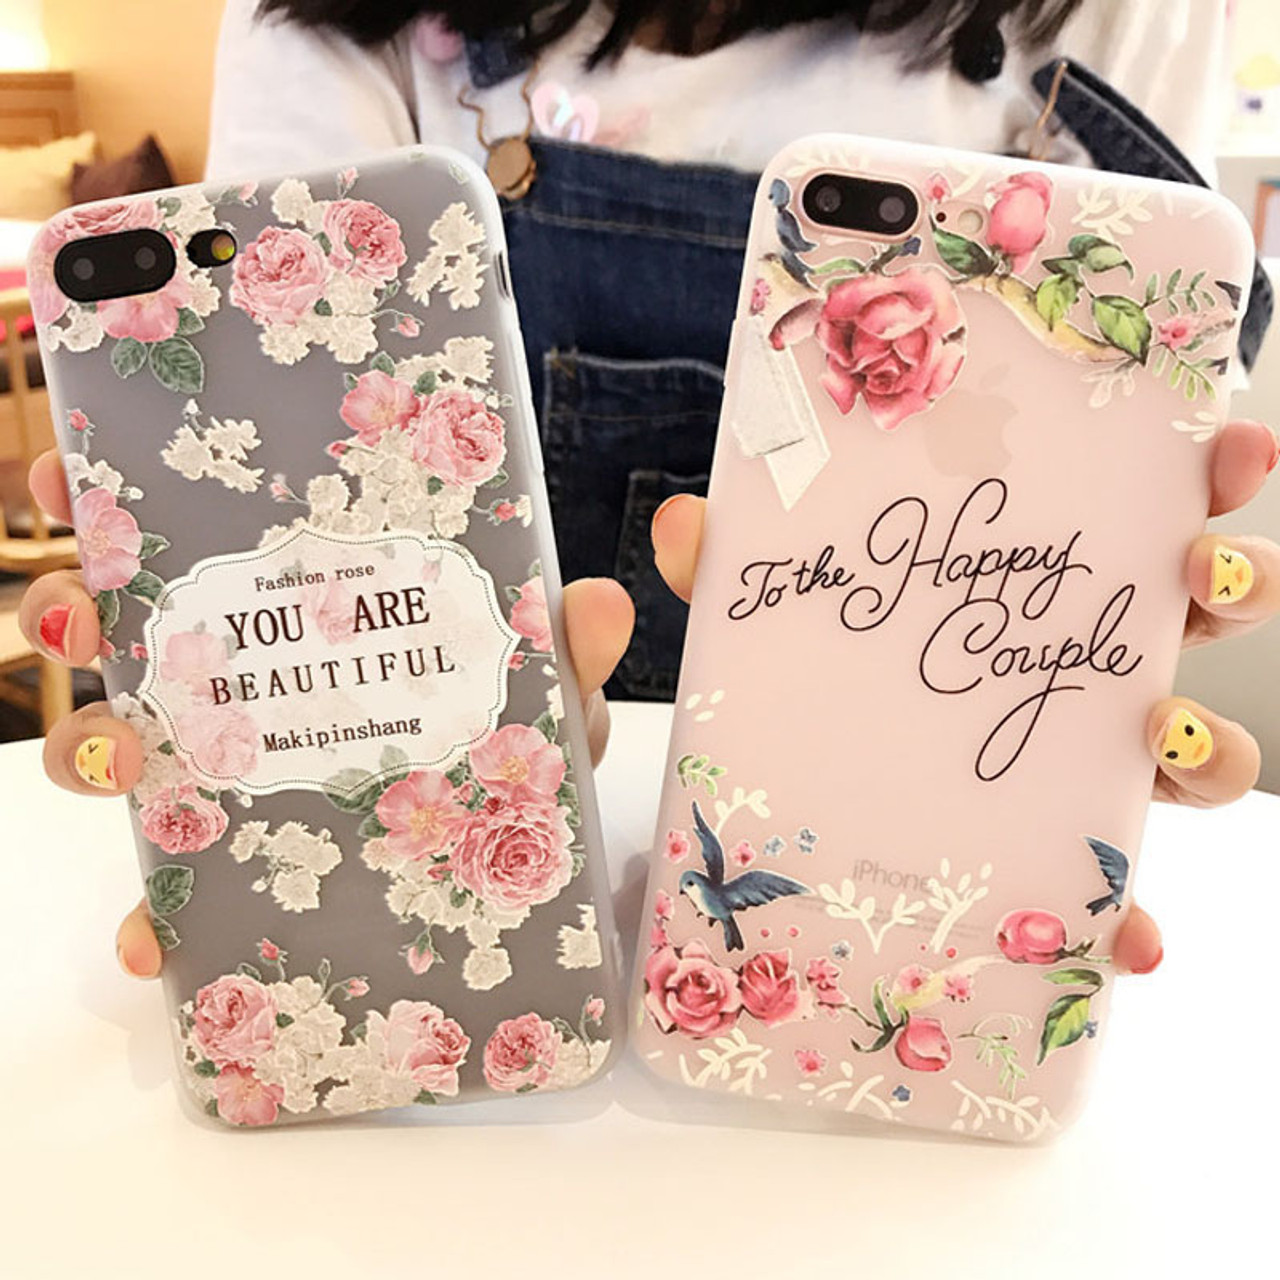 outlet store bca93 84aec USLION Flower Silicon Phone Case For iPhone 7 8 Plus Rose Floral Leaves  Cases For iPhone X 8 7 6 6S Plus 5 5S SE Soft TPU Cover